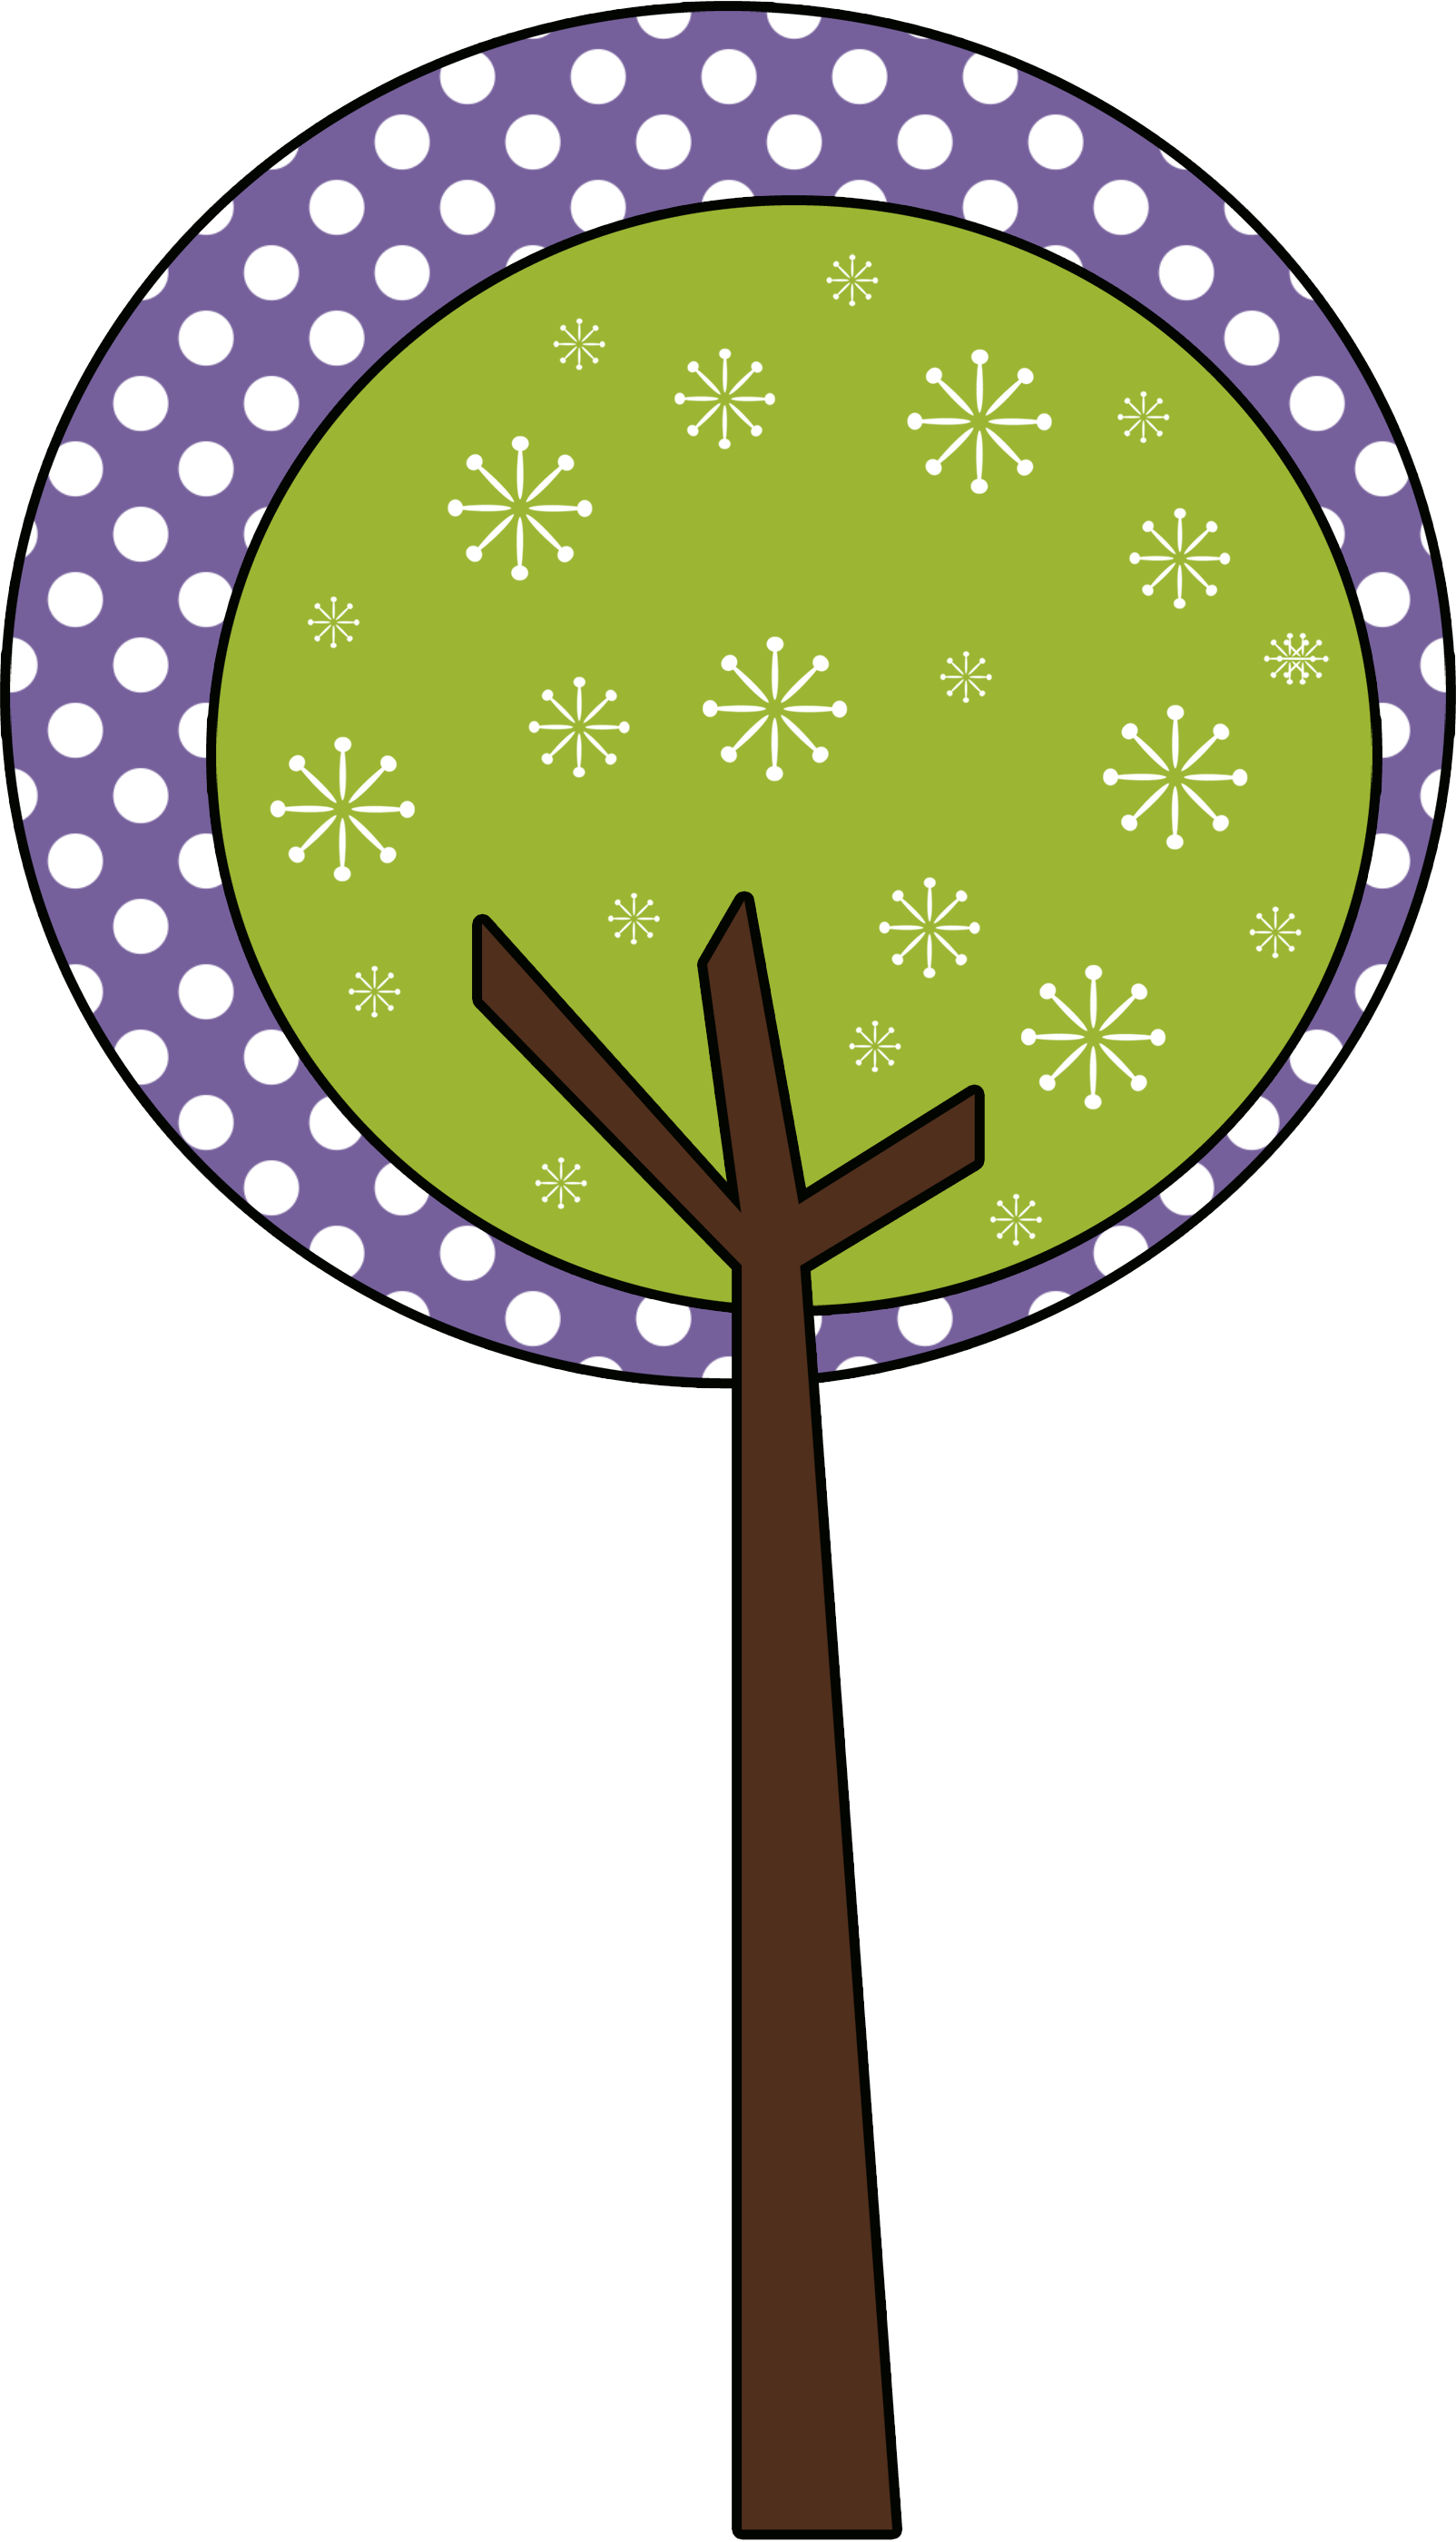 Free online clipart of a tree for a book graphic freeuse download Photo by @daniellemoraesfalcao - Minus | Art project | Pinterest ... graphic freeuse download